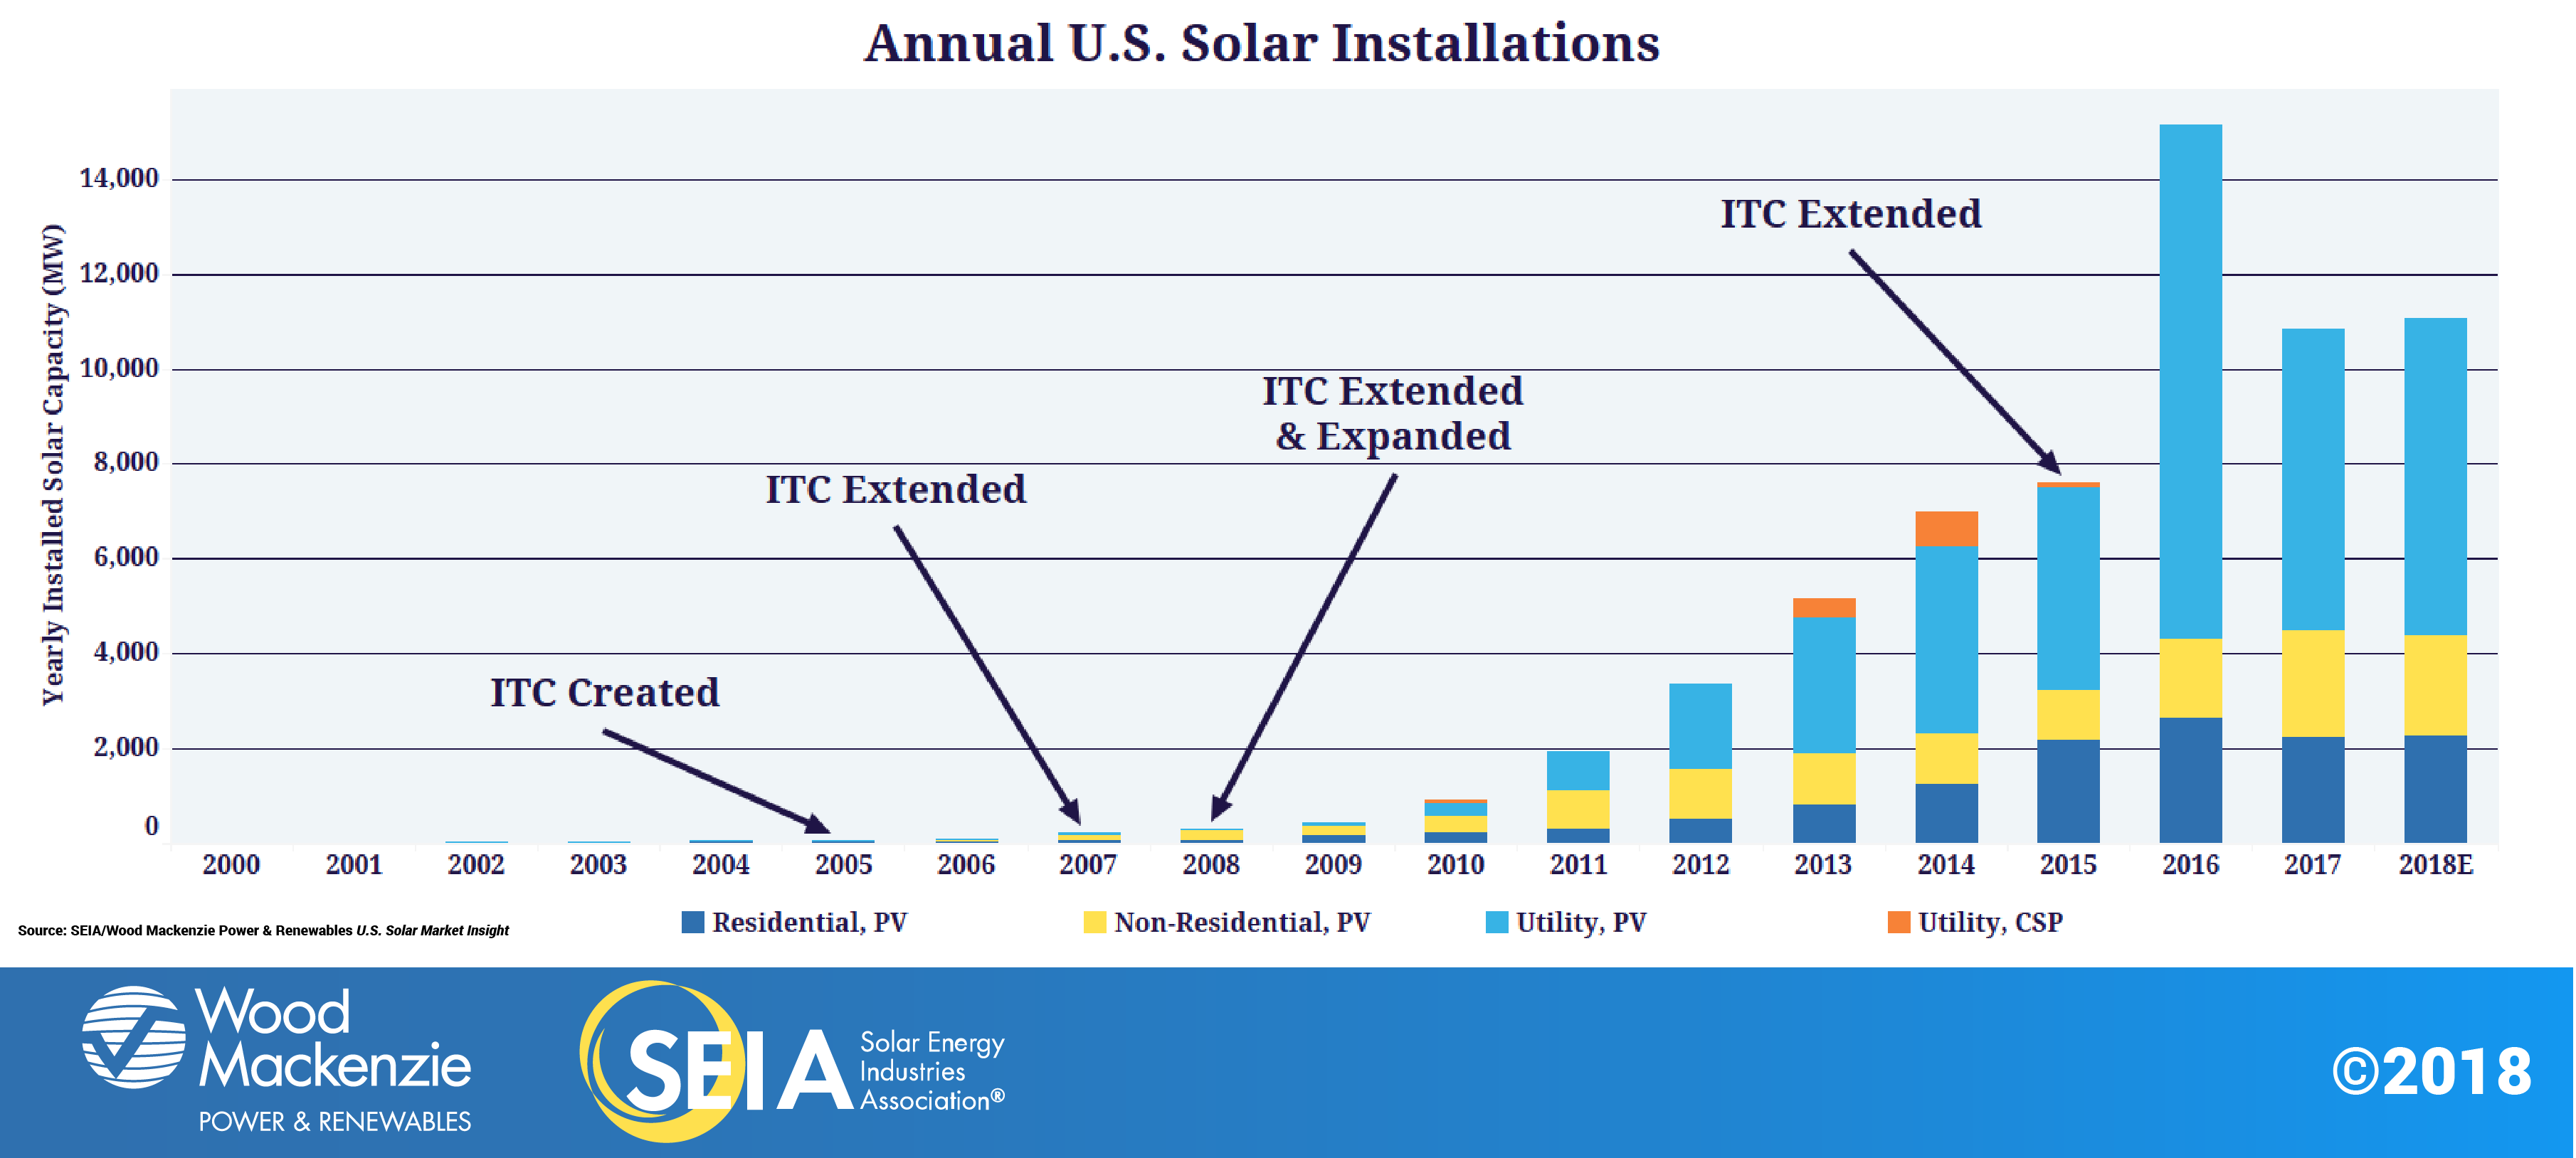 Solar Industry Research Data Seia Have A Degree In Basic Electricity And I Had Someone Come Growth With The Itc